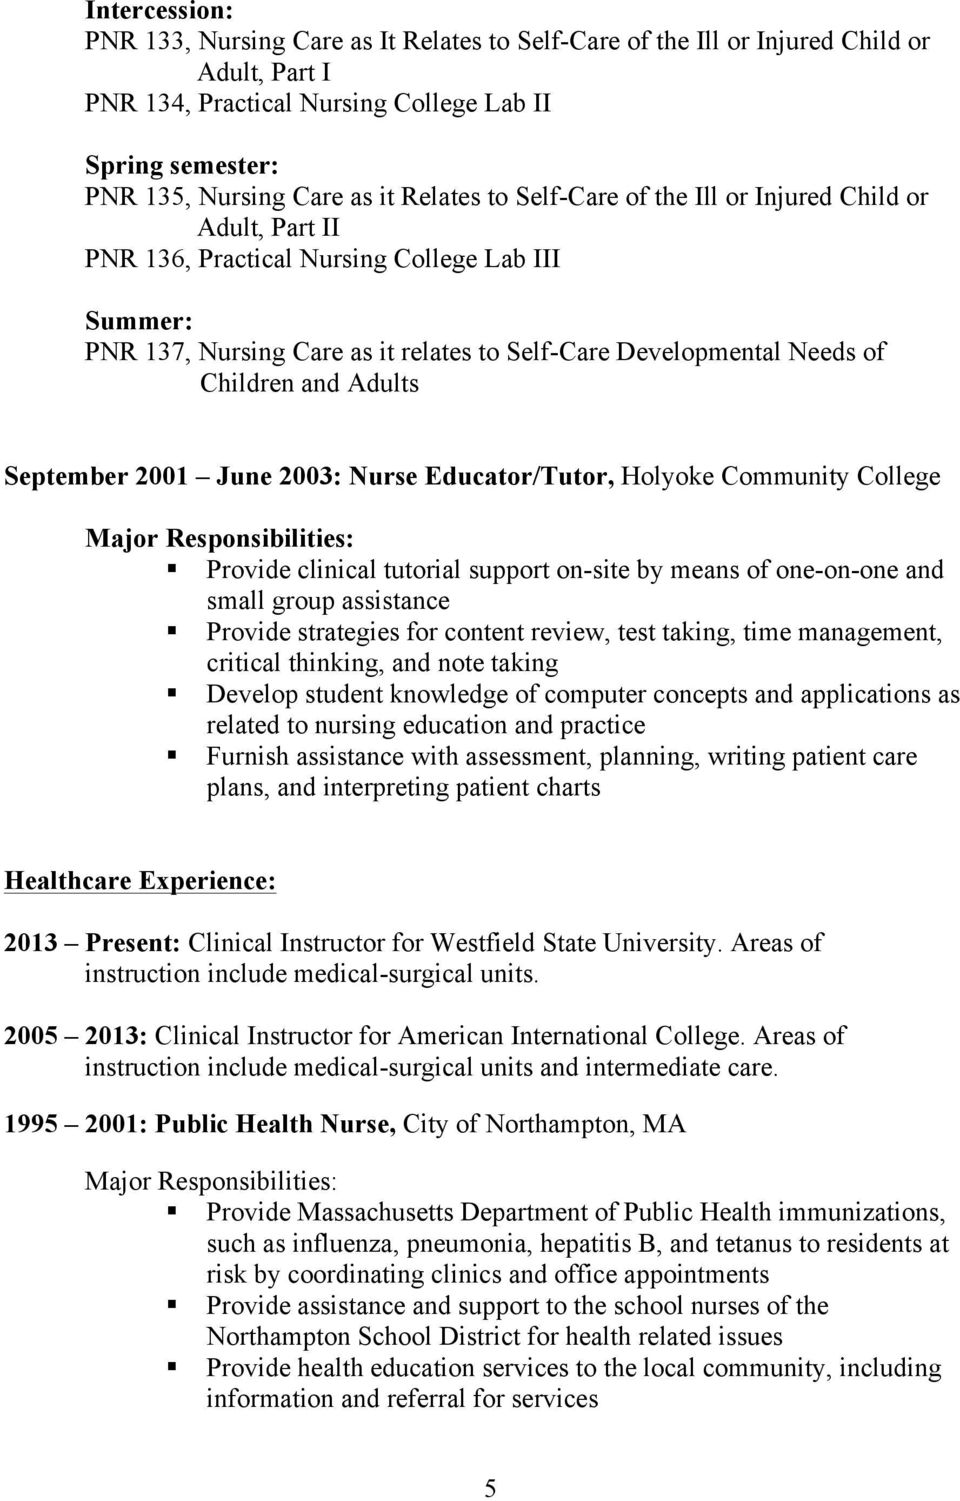 and Adults September 2001 June 2003: Nurse Educator/Tutor, Holyoke Community College Major Responsibilities: Provide clinical tutorial support on-site by means of one-on-one and small group